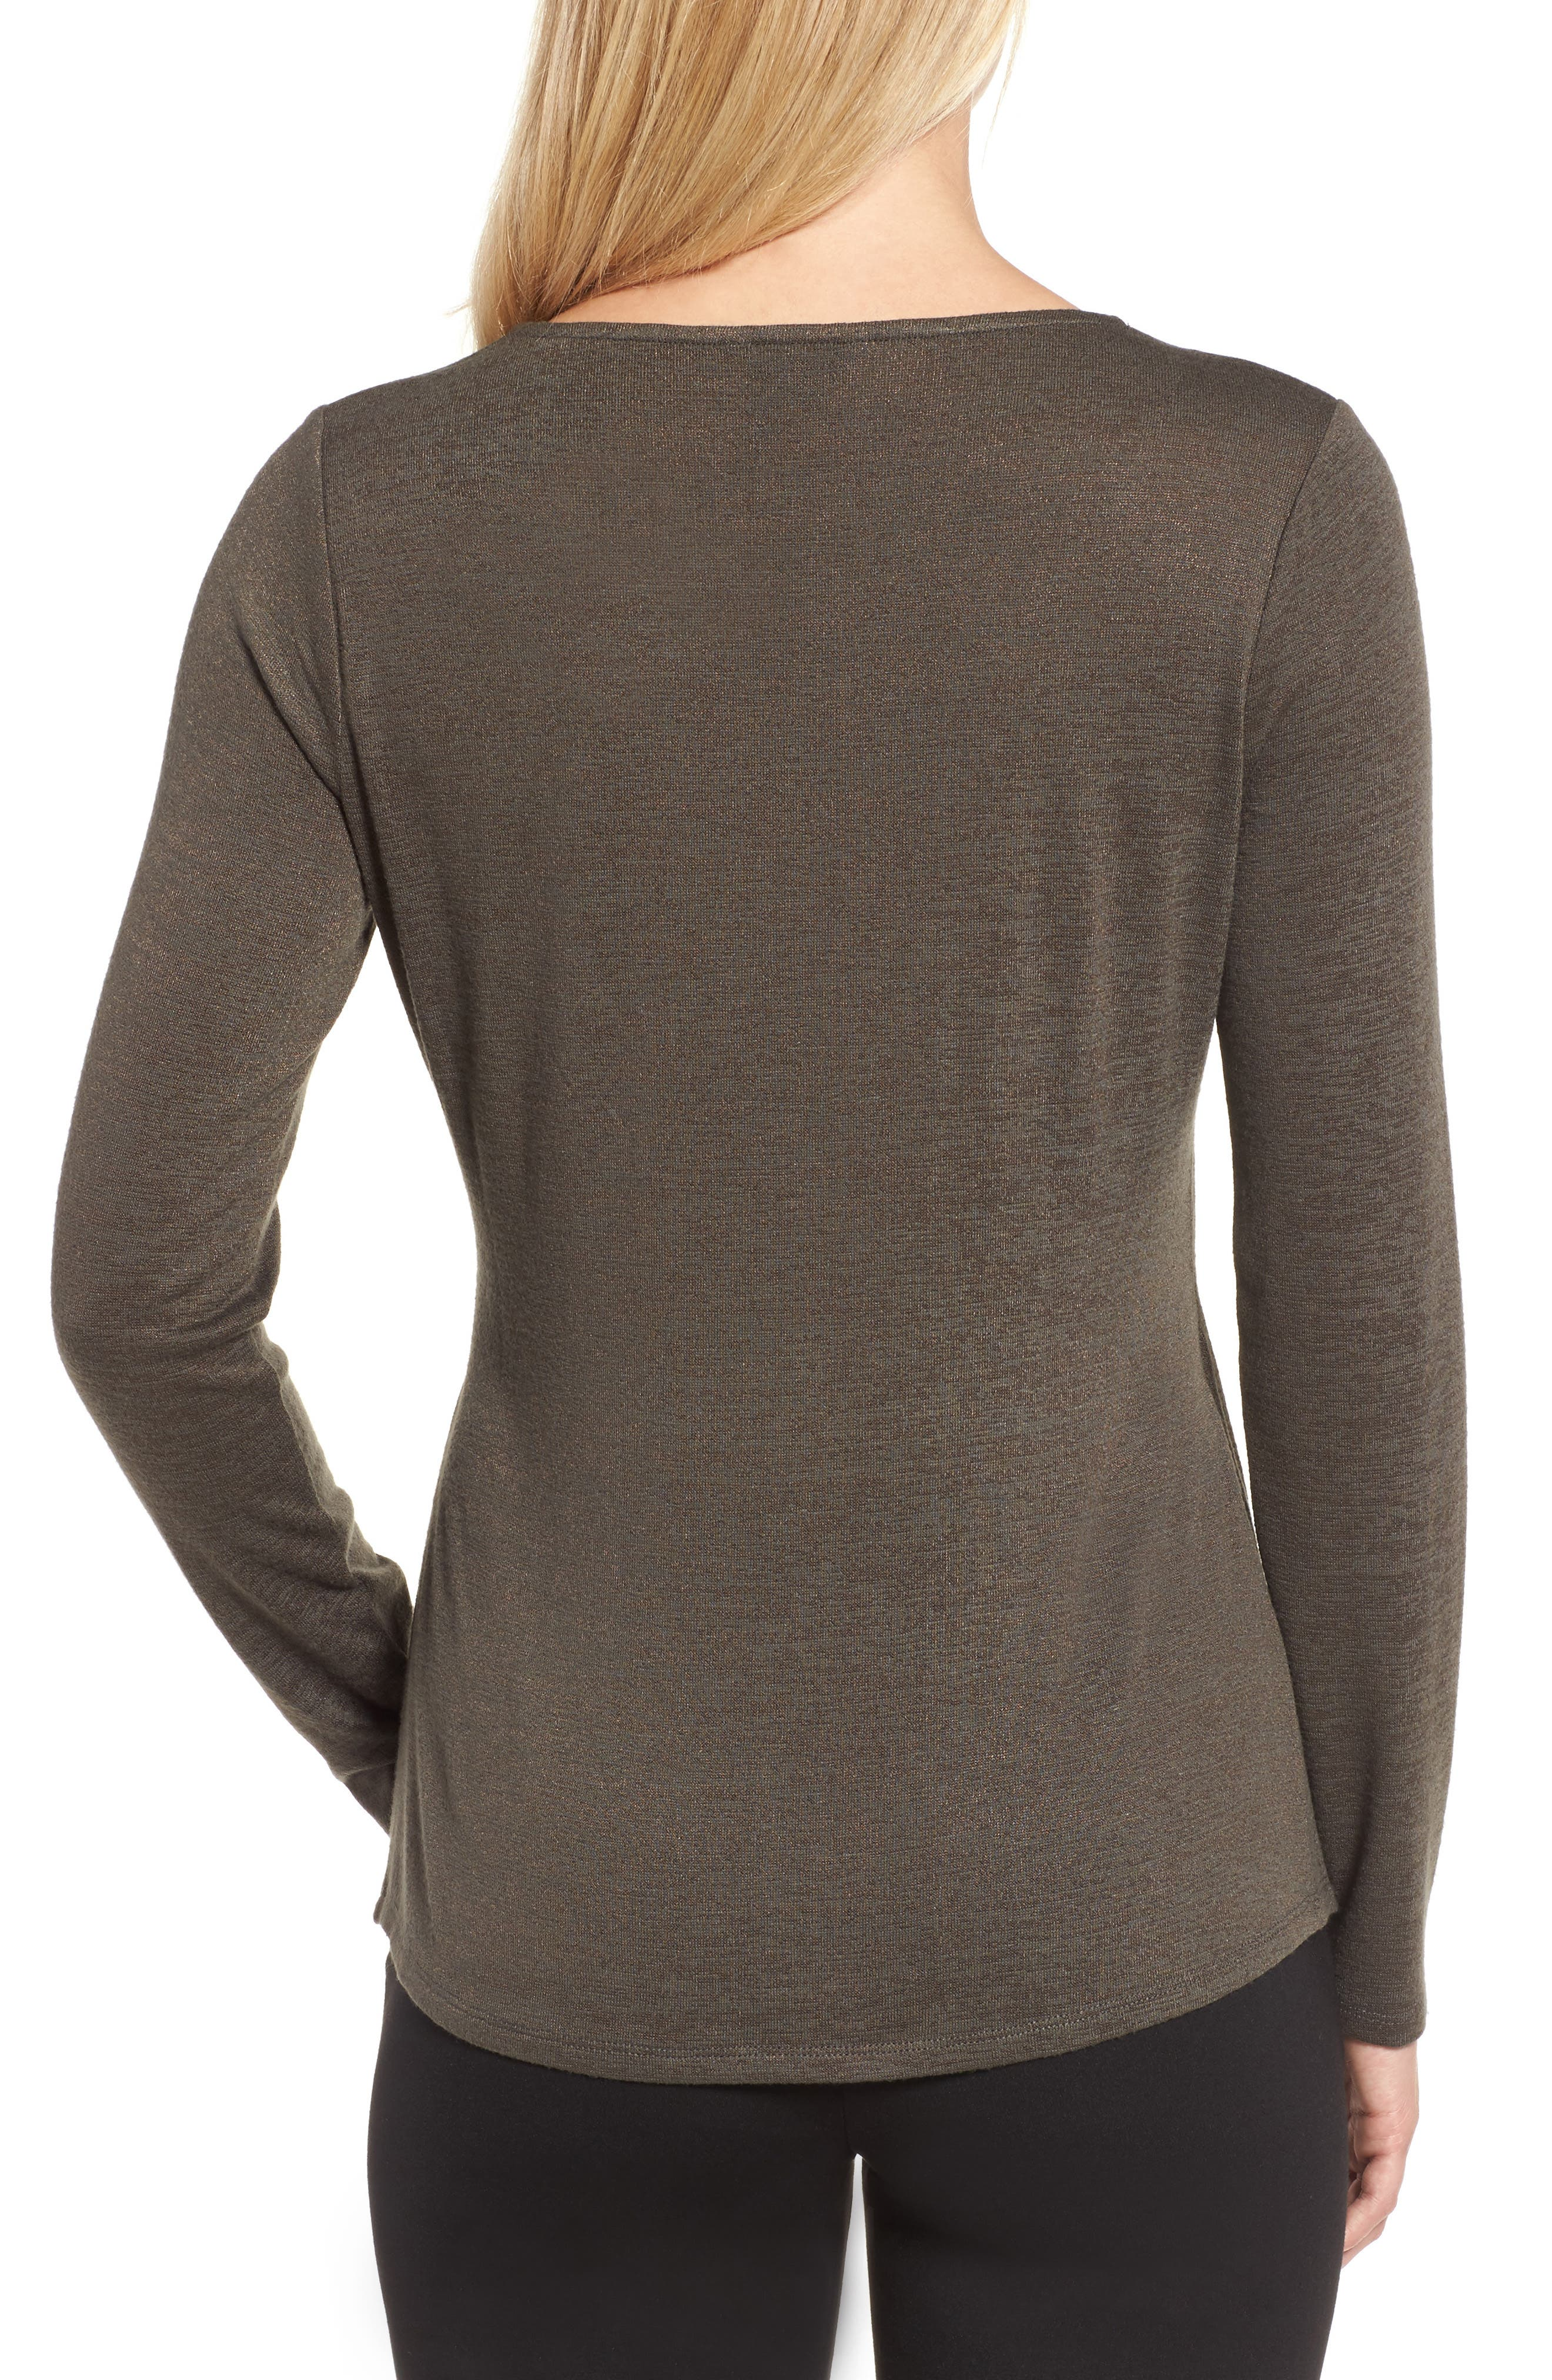 Every Occasion Drape Top,                             Alternate thumbnail 7, color,